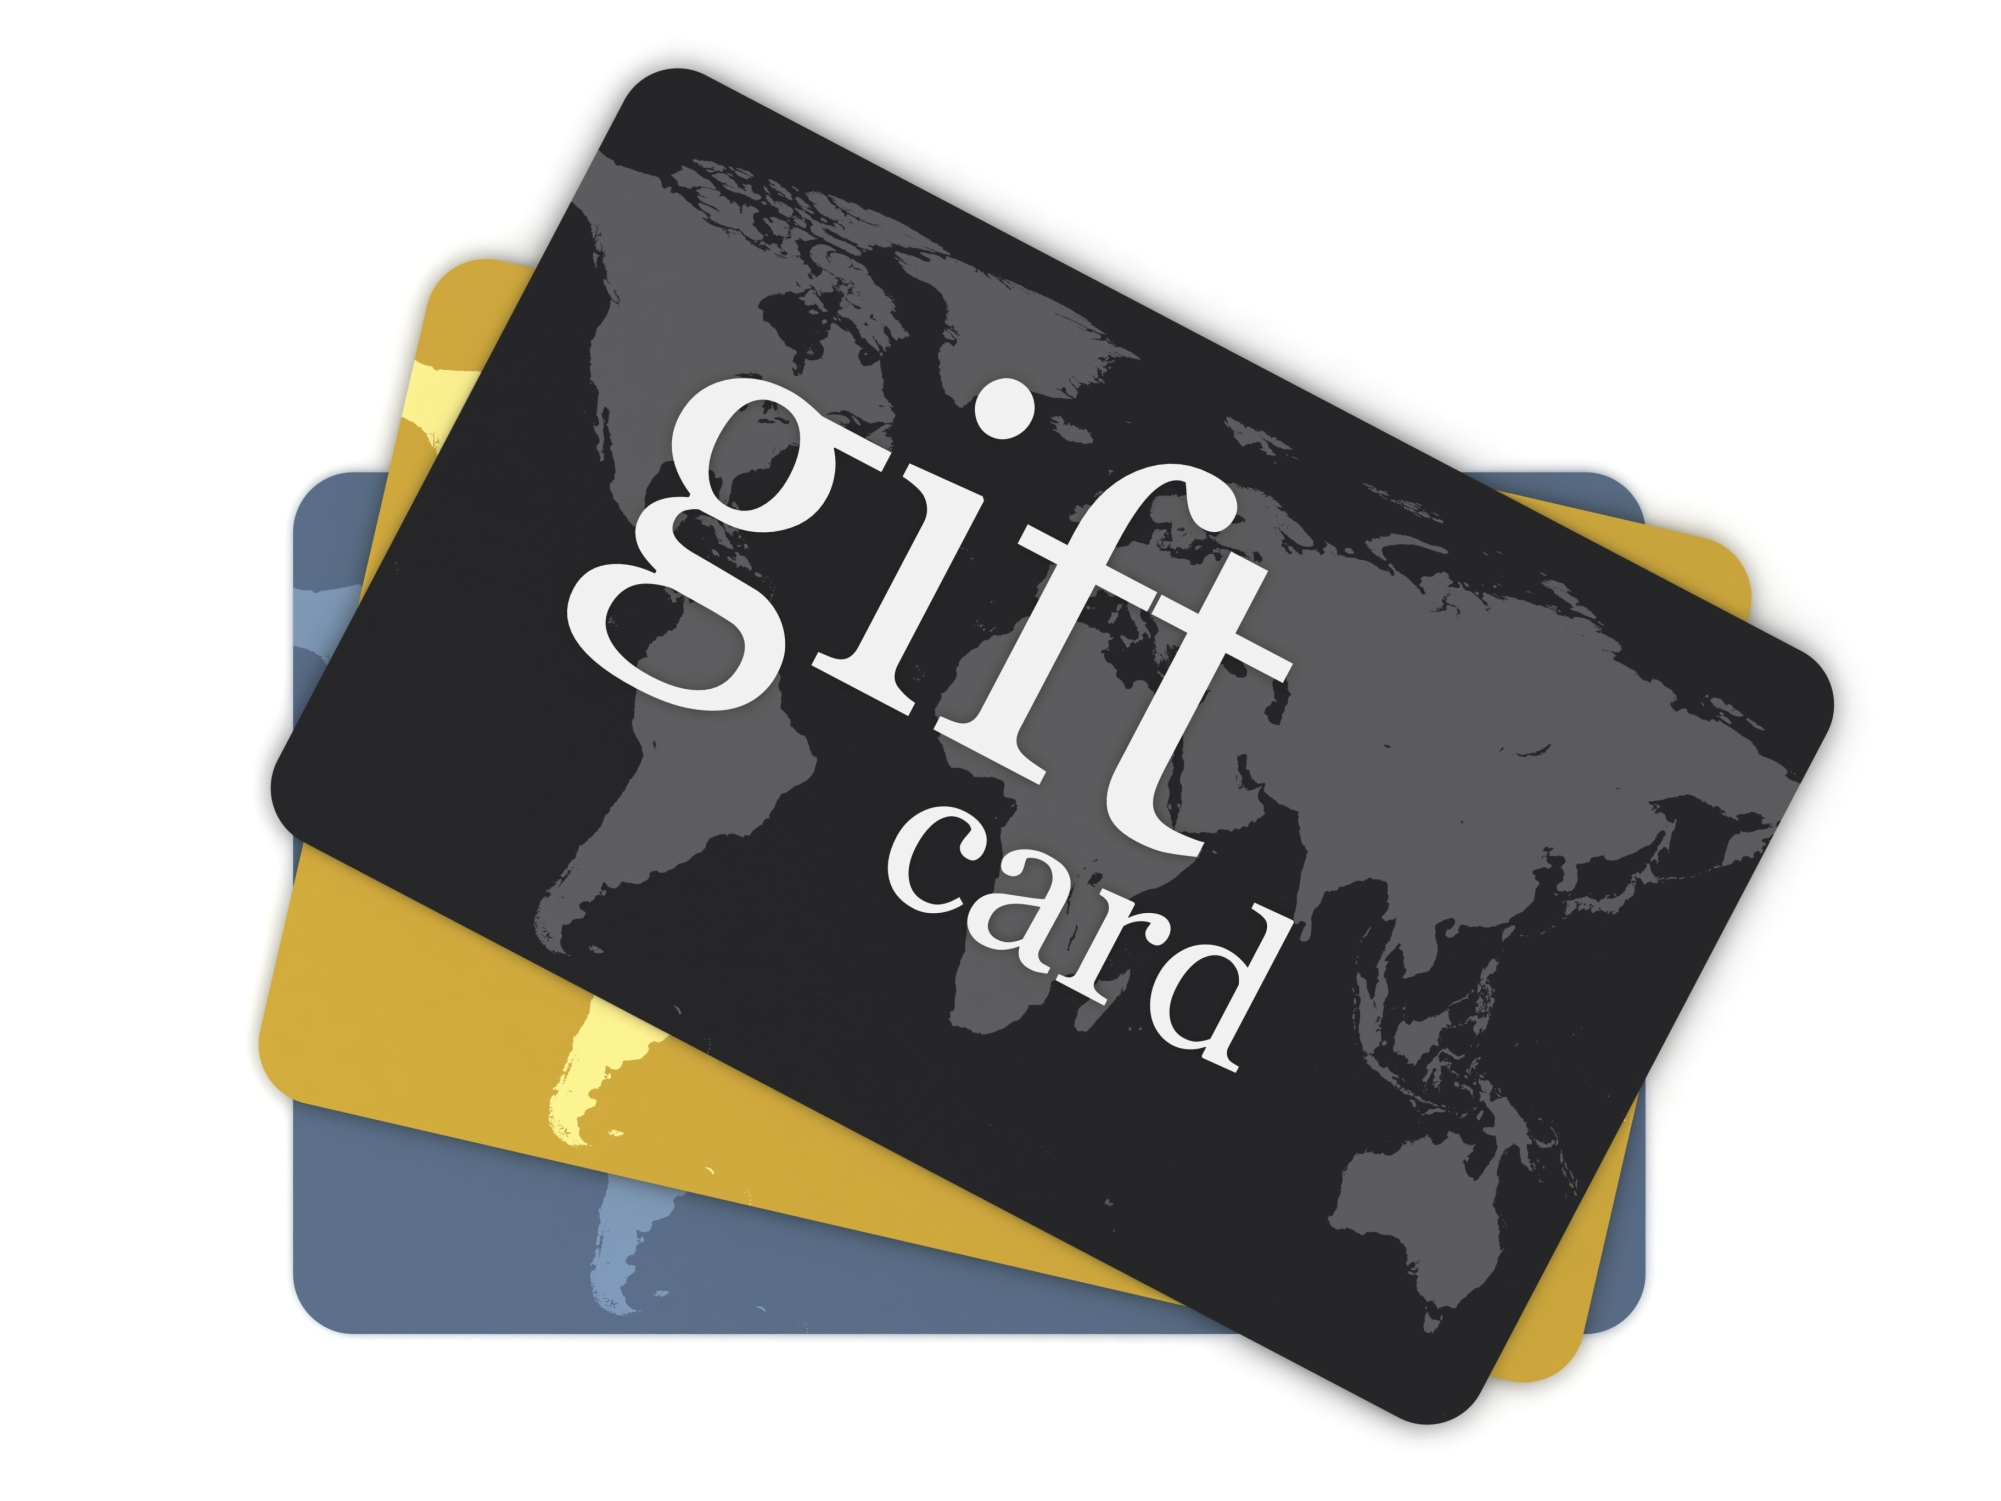 Get Free Gift Cards. When reaching our 10 millionth member, we asked our members to share their stories. One common theme they all have in common is a love of earning free gift cards.